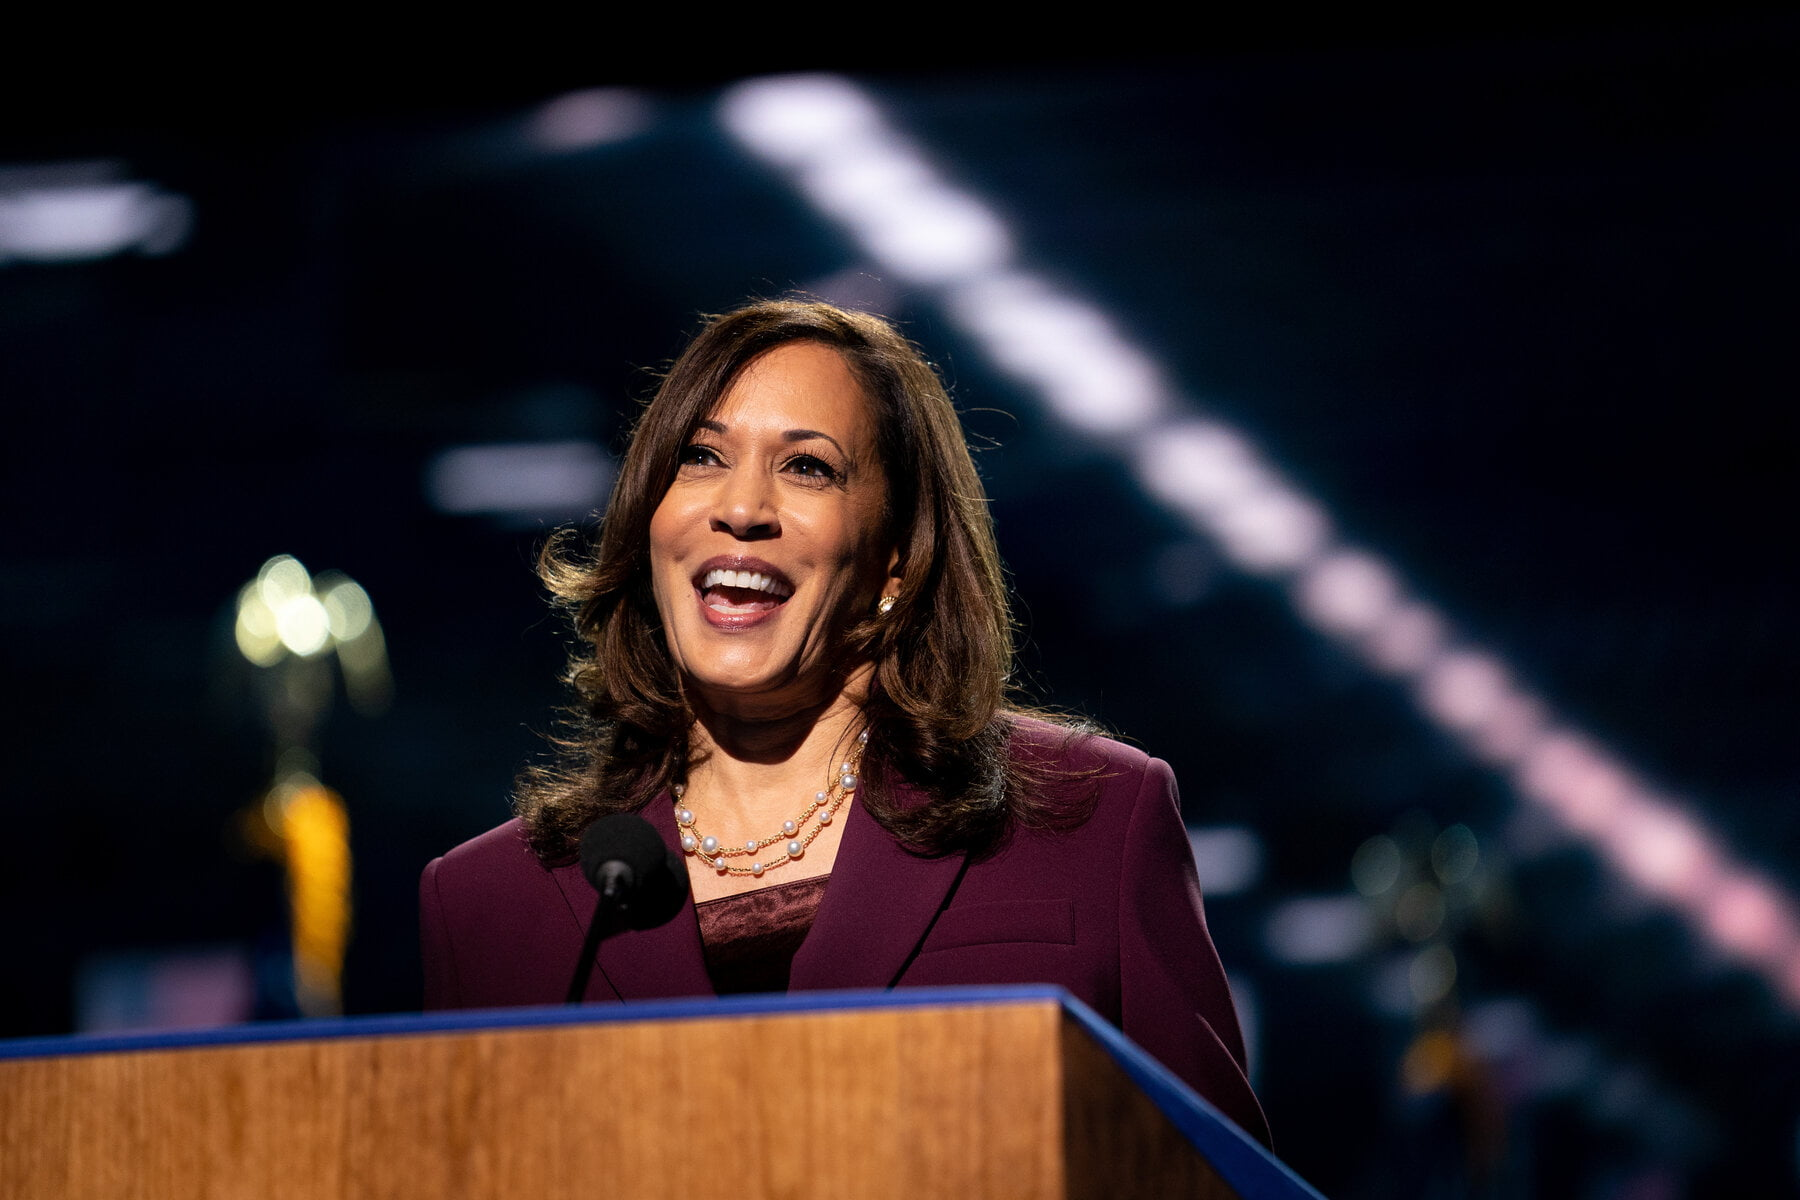 Kamala Harris makes history as America's first female vice president